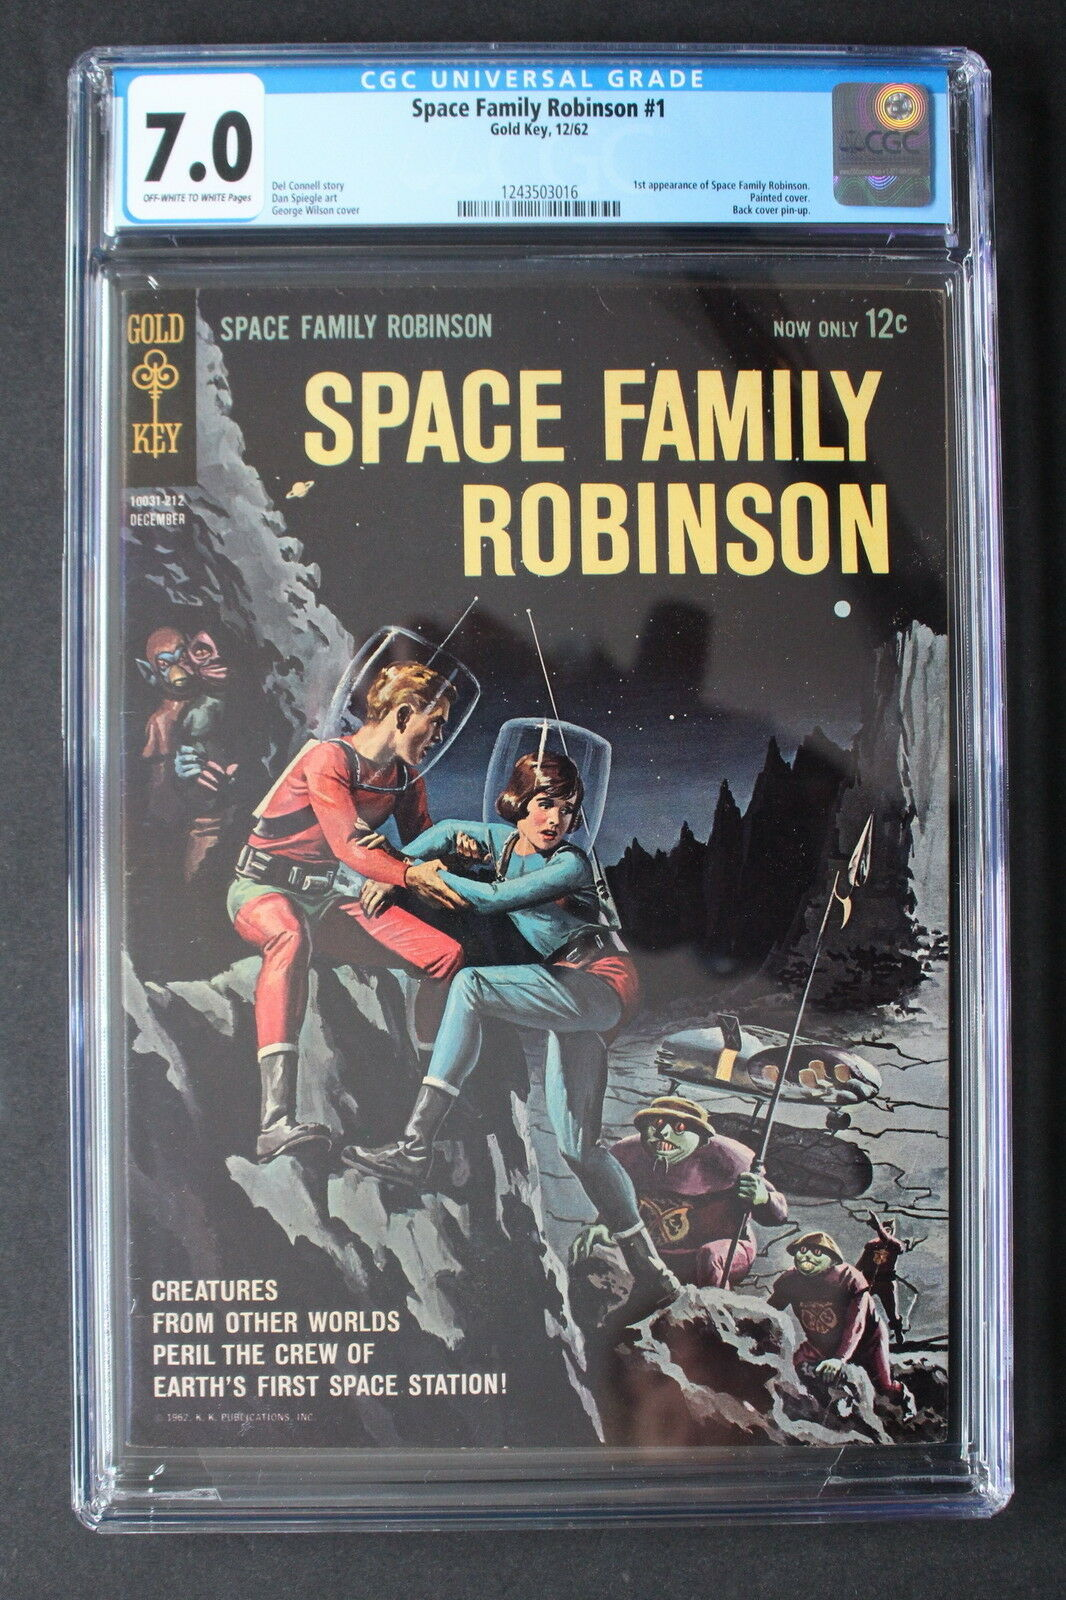 SPACE FAMILY ROBINSON #1 LOST IN SPACE 1962 Gold Key Netflix TV Reboot CGC 7.0